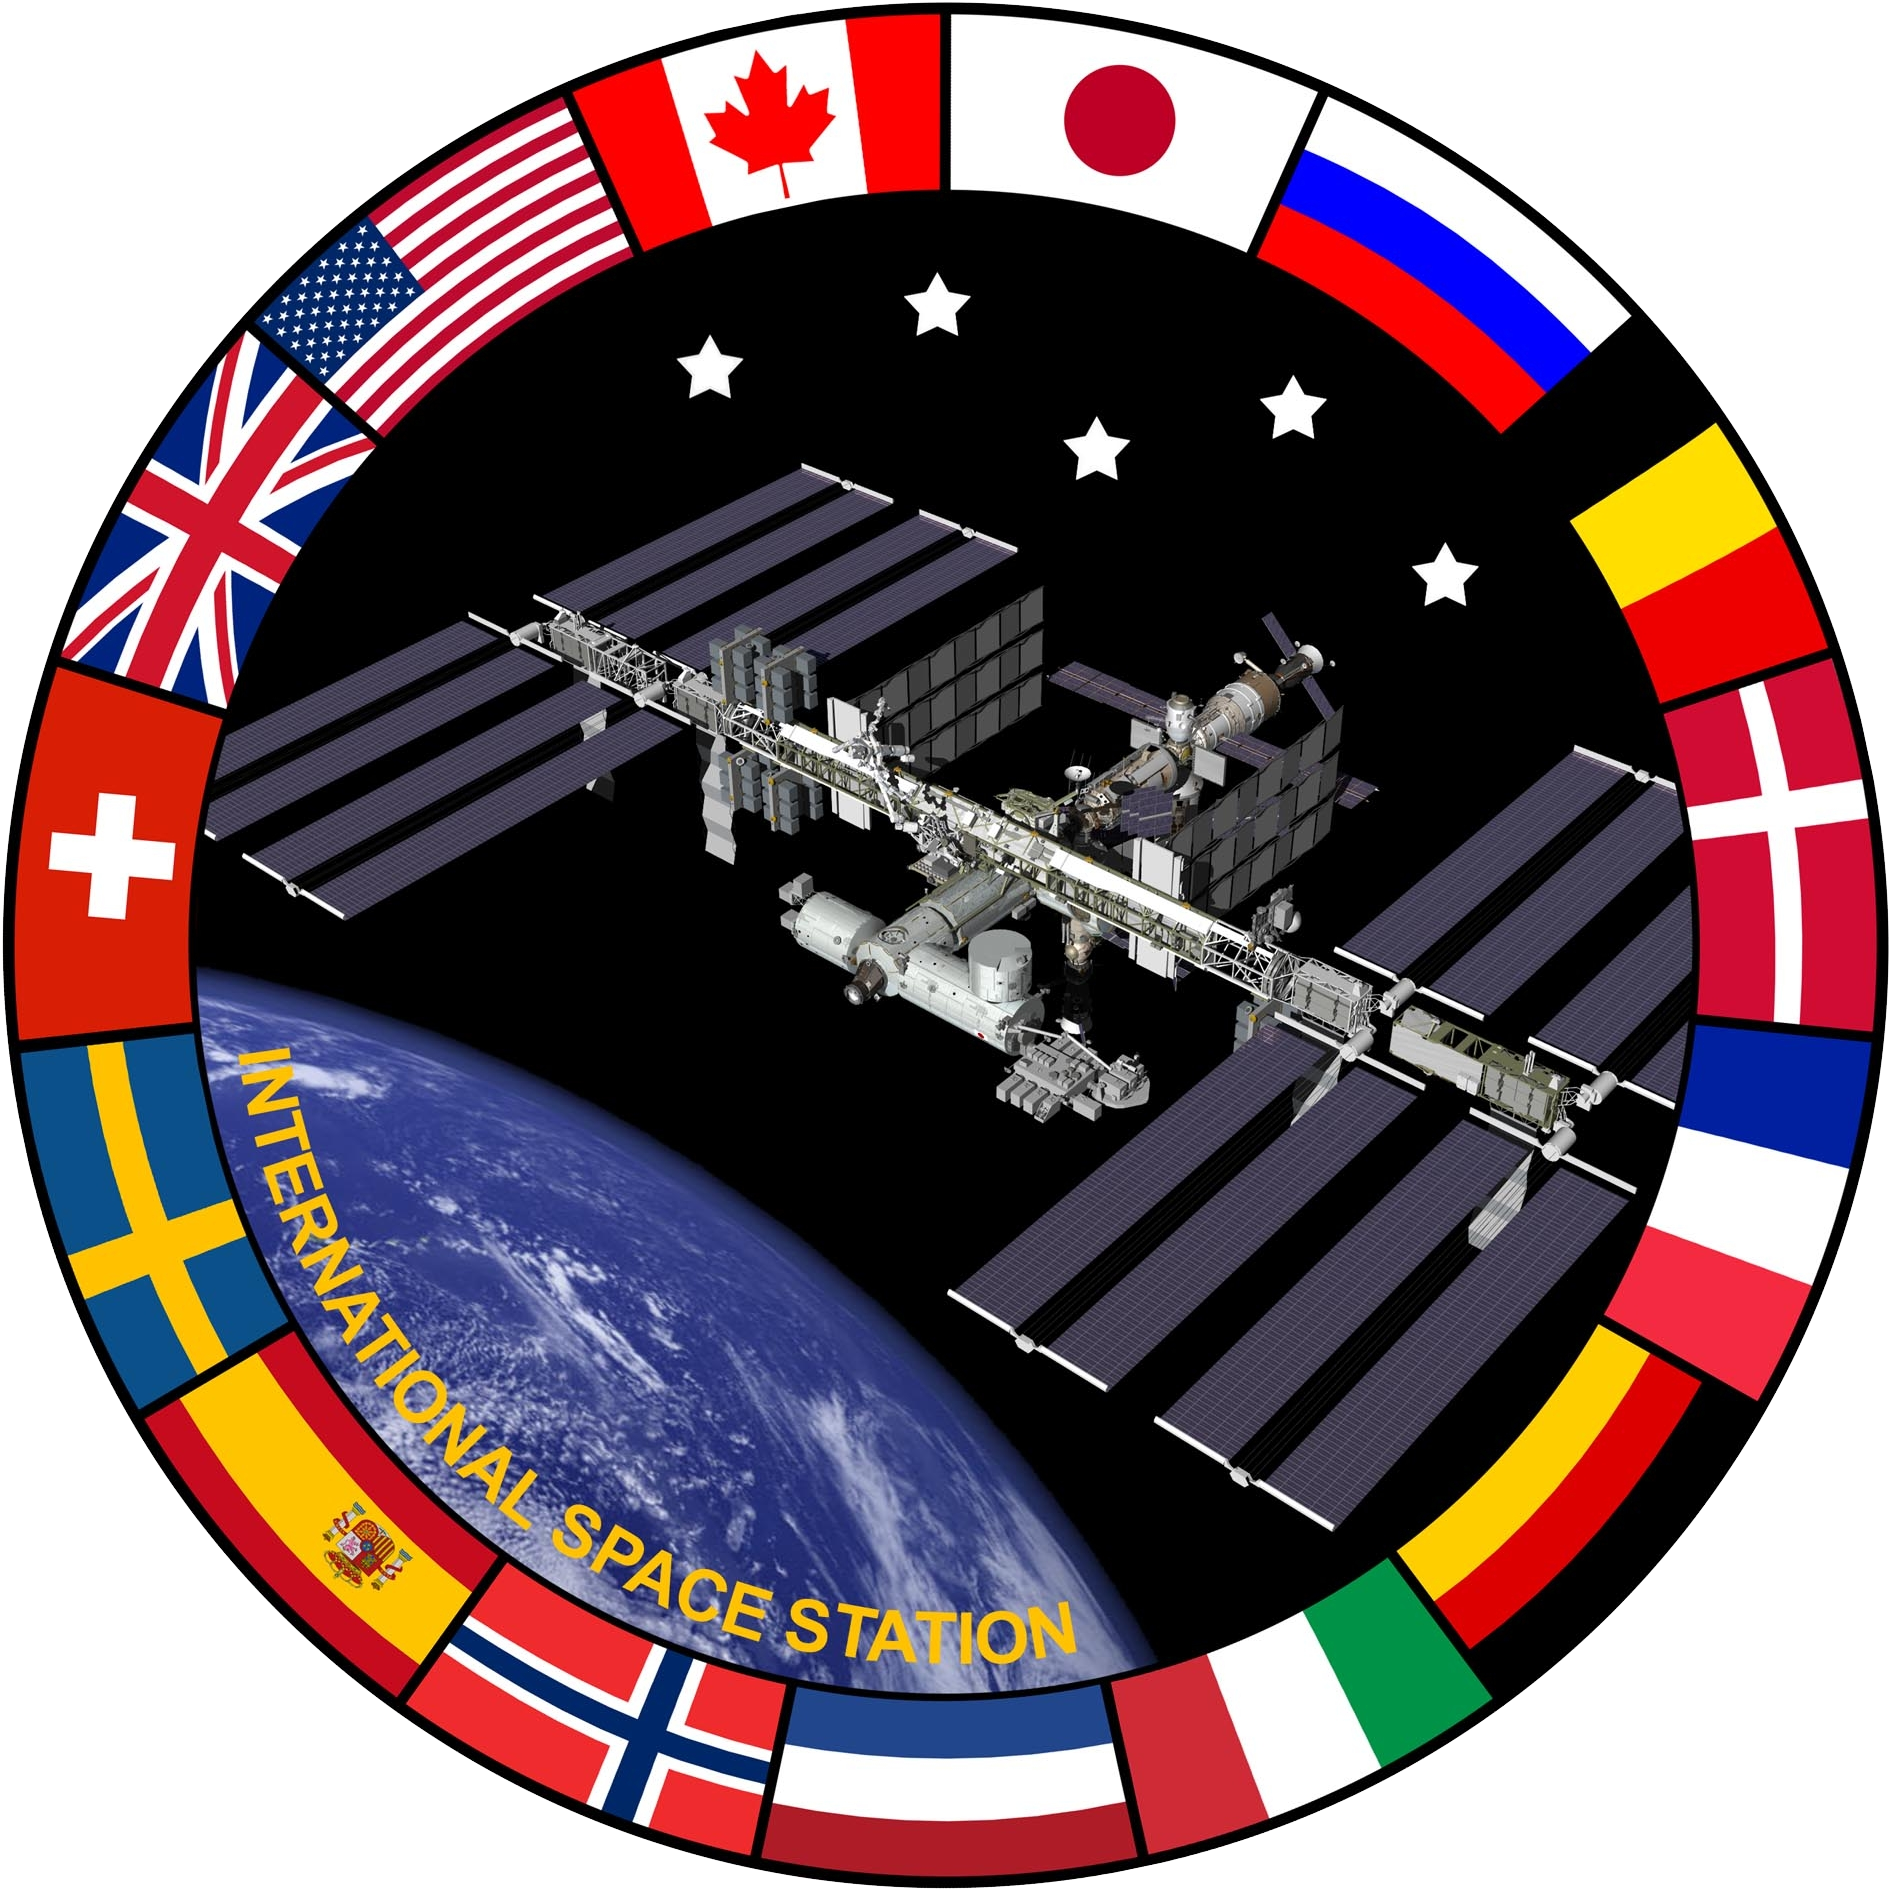 International Space Station | commons.wikimedia.org / NASA